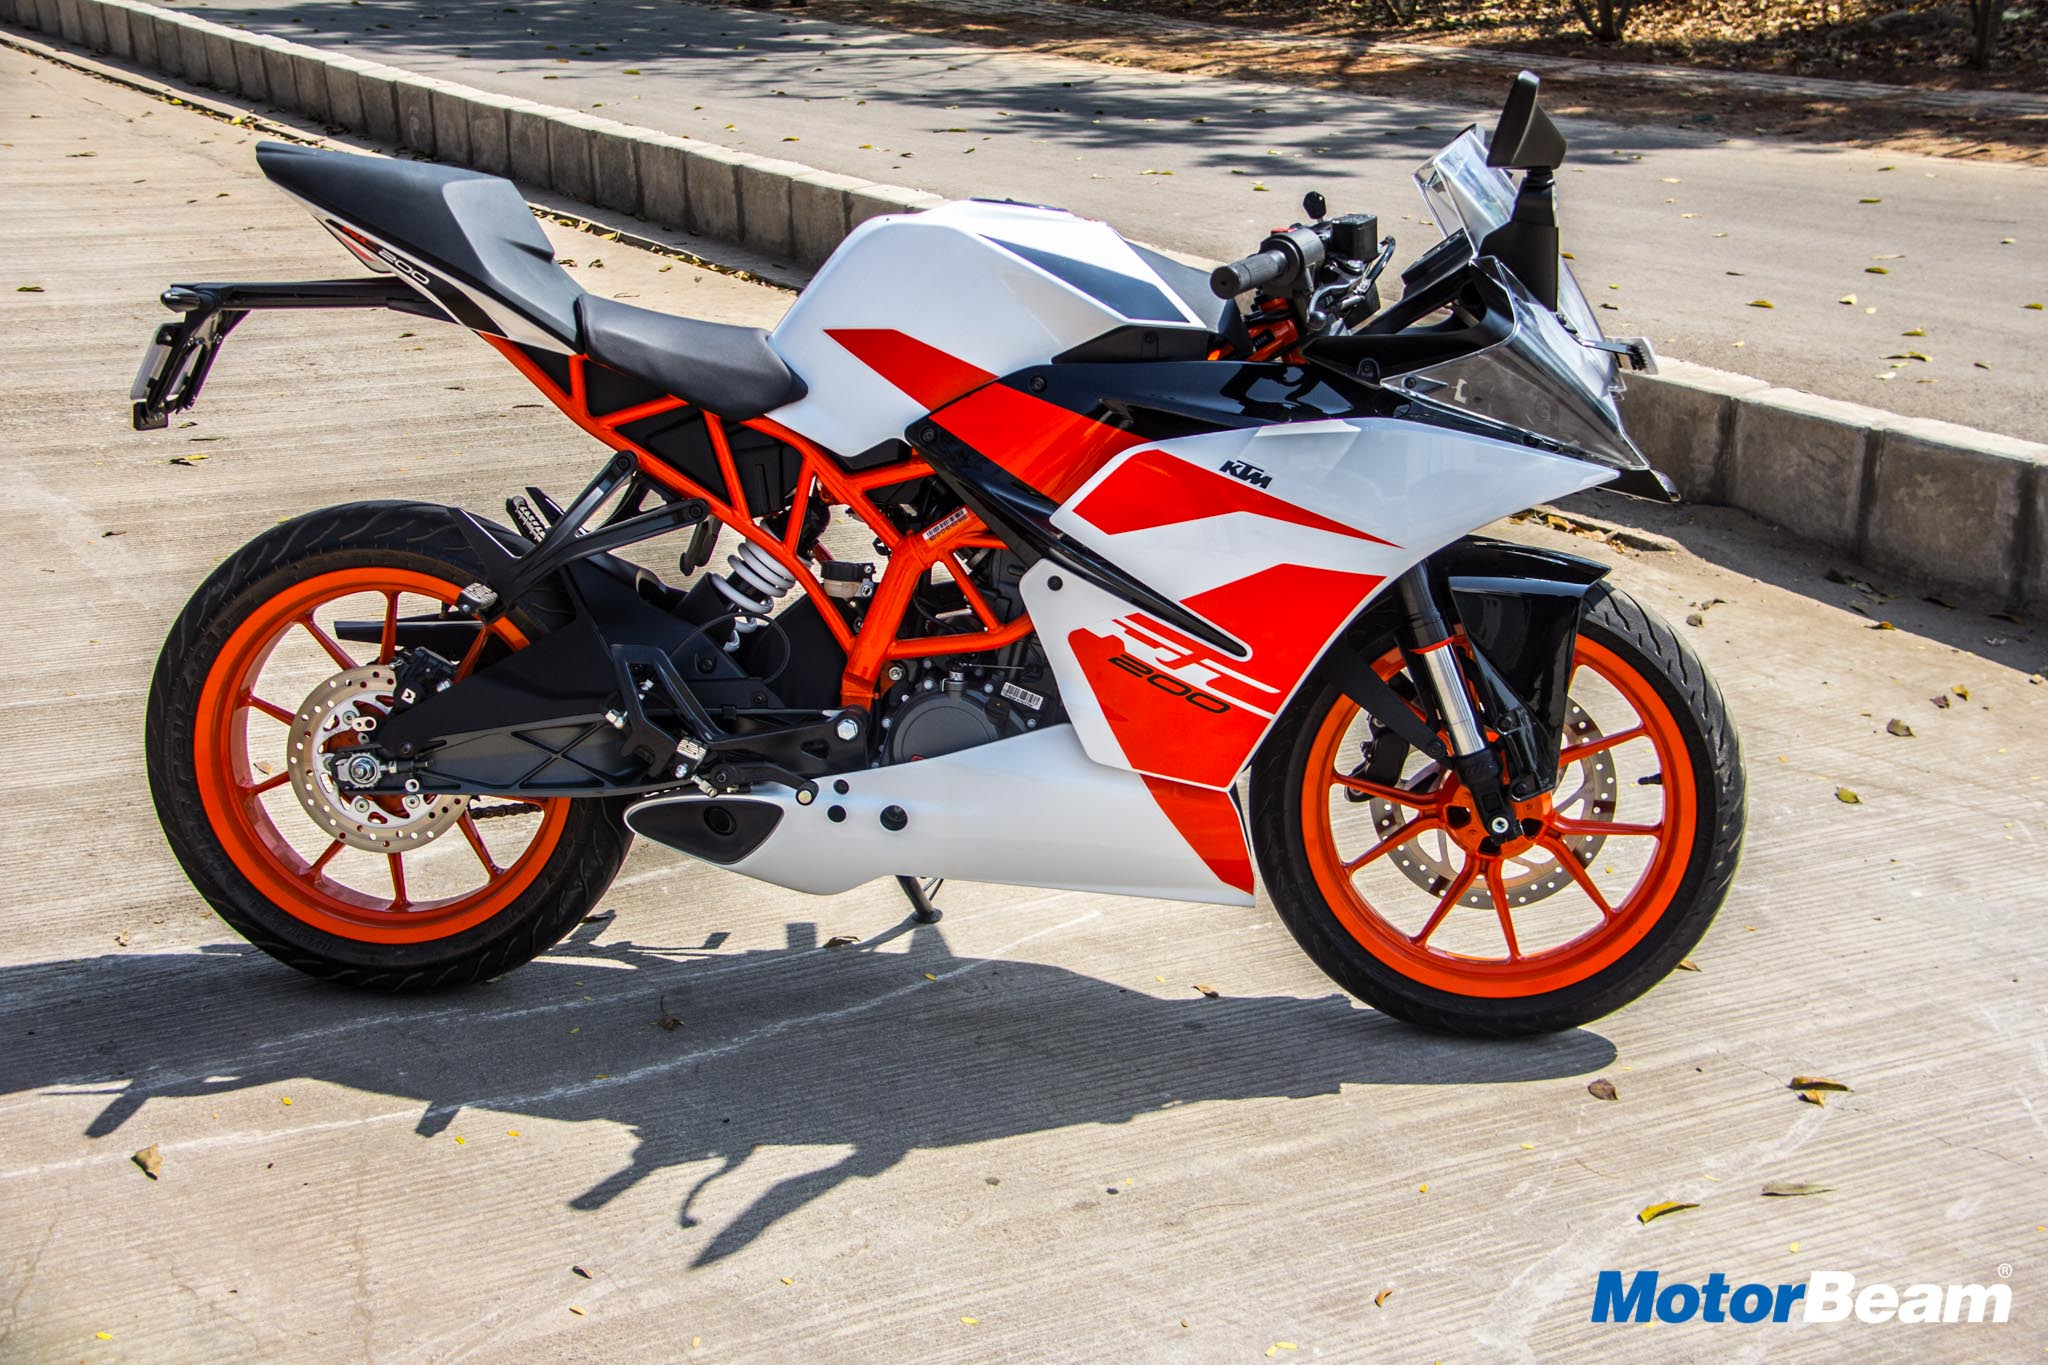 KTM RC 200 Price, Review, Mileage, Features, Specifications